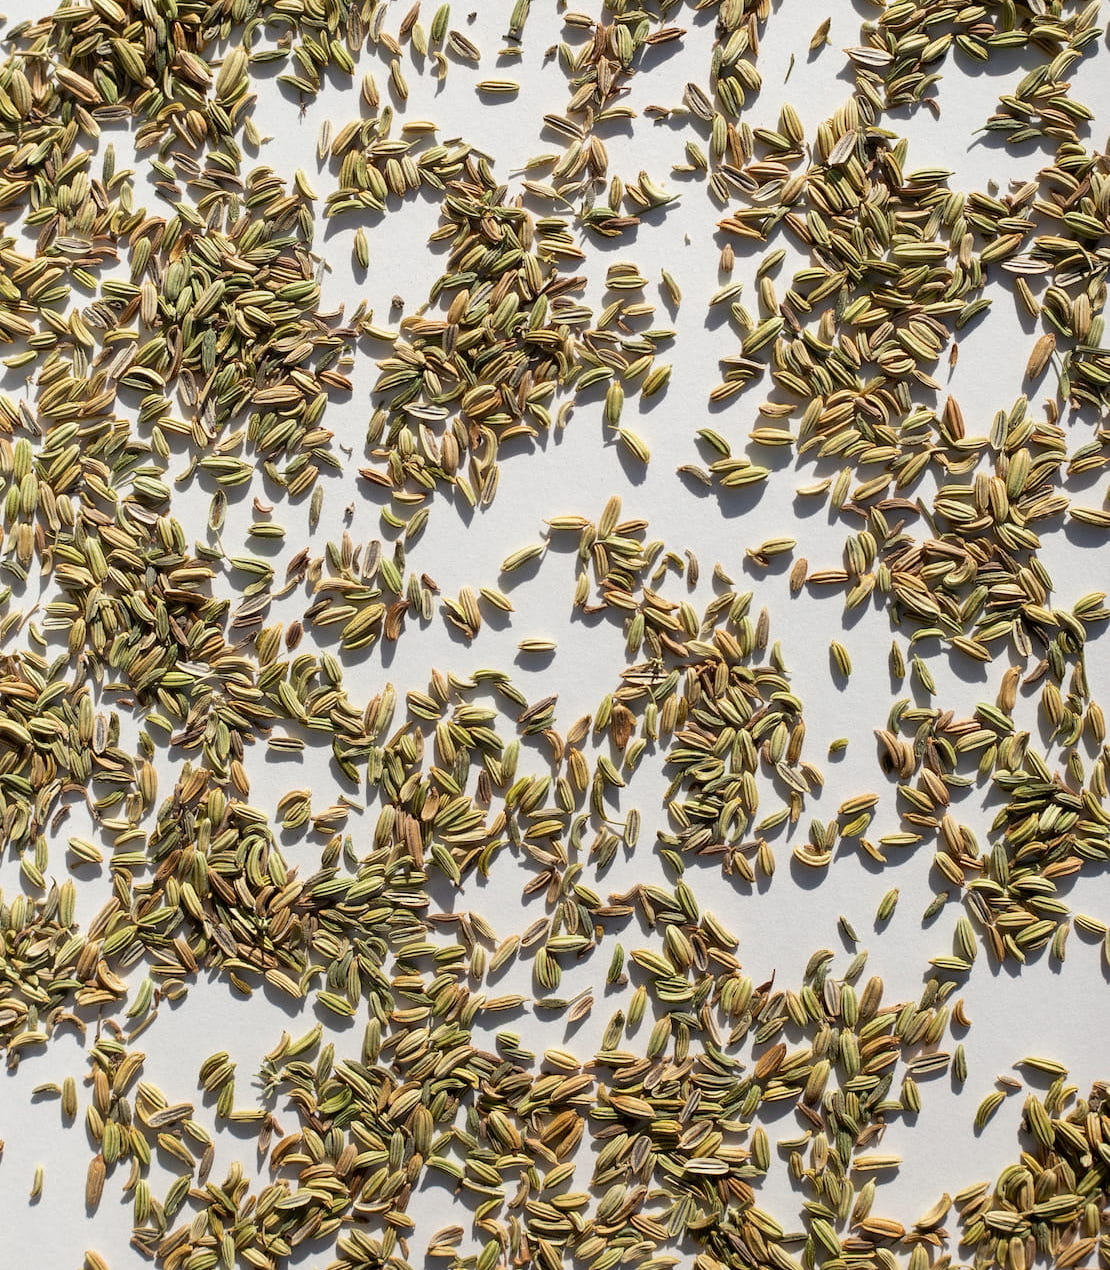 fennel seeds greek